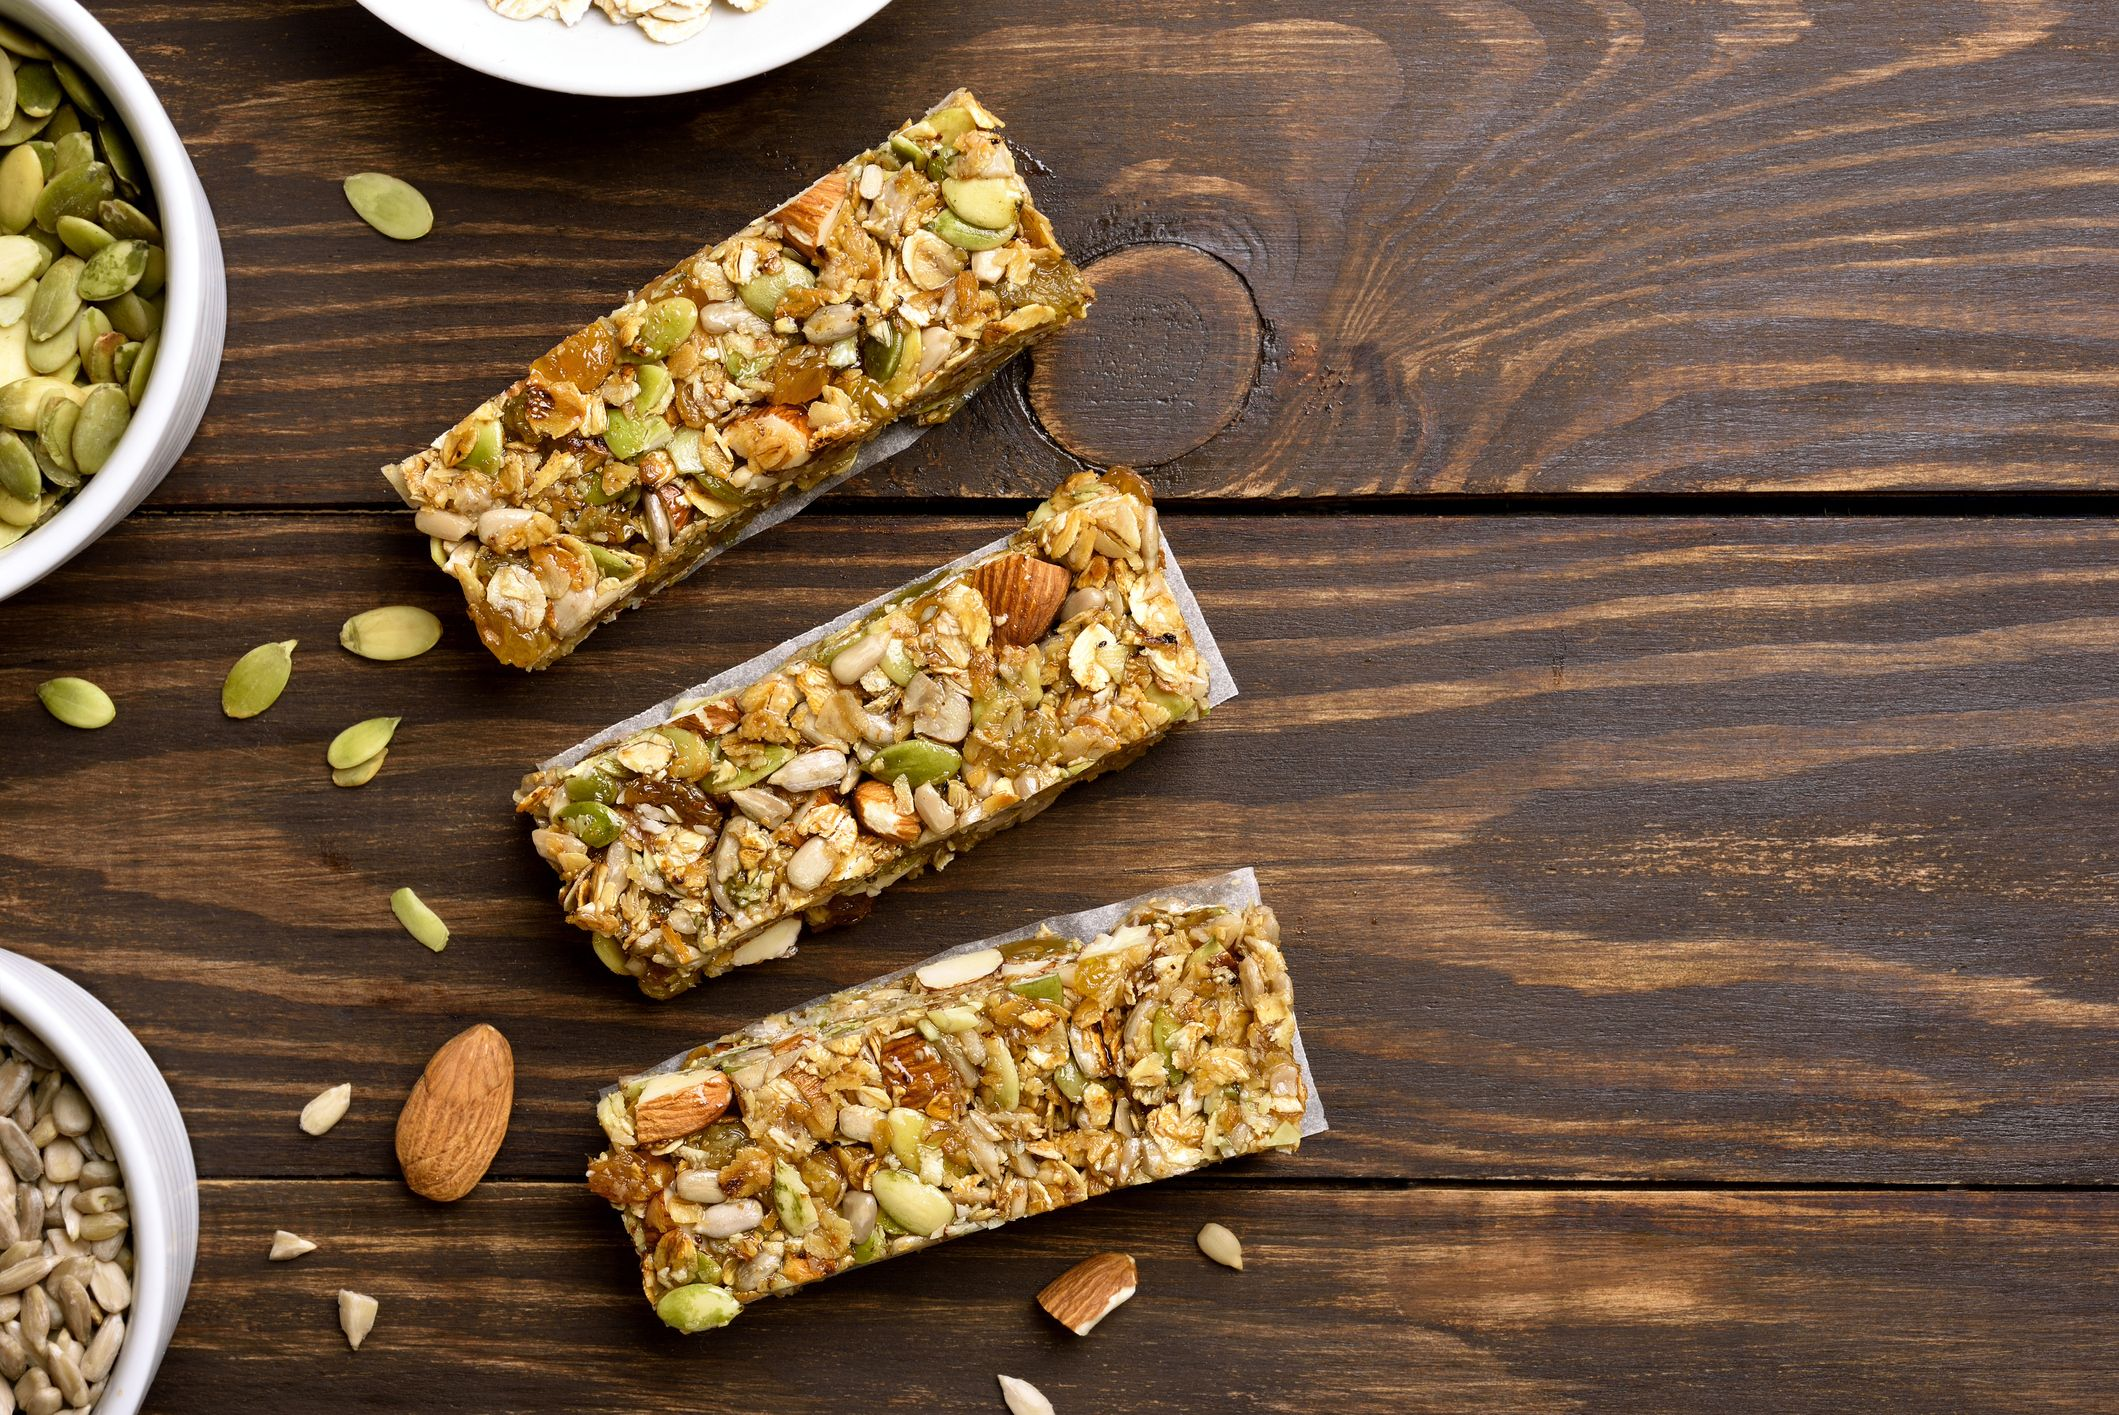 The 20 Best Low-Carb Protein Bars, According To Nutritionists